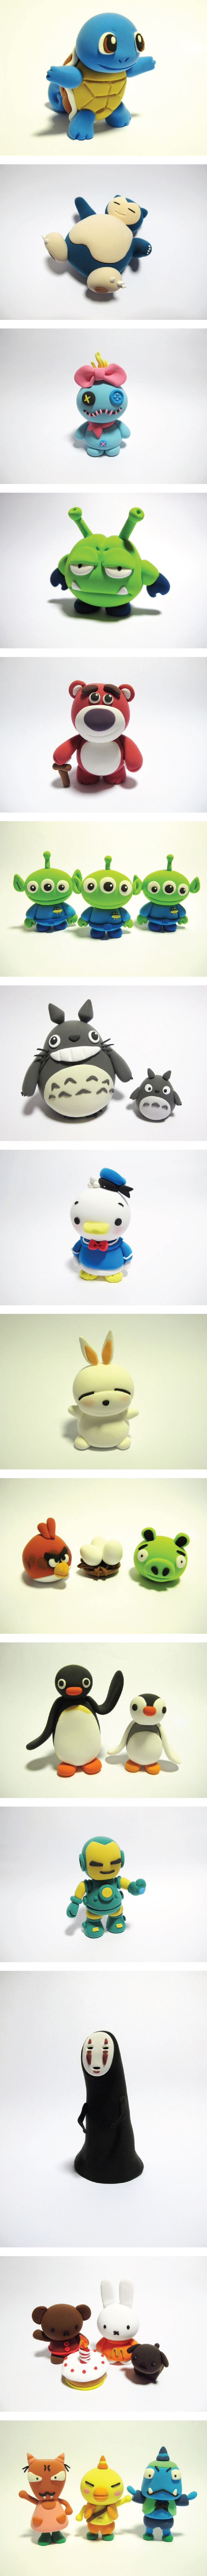 Adorable clay characters to inspire you! Happy modelling, JumpingClay